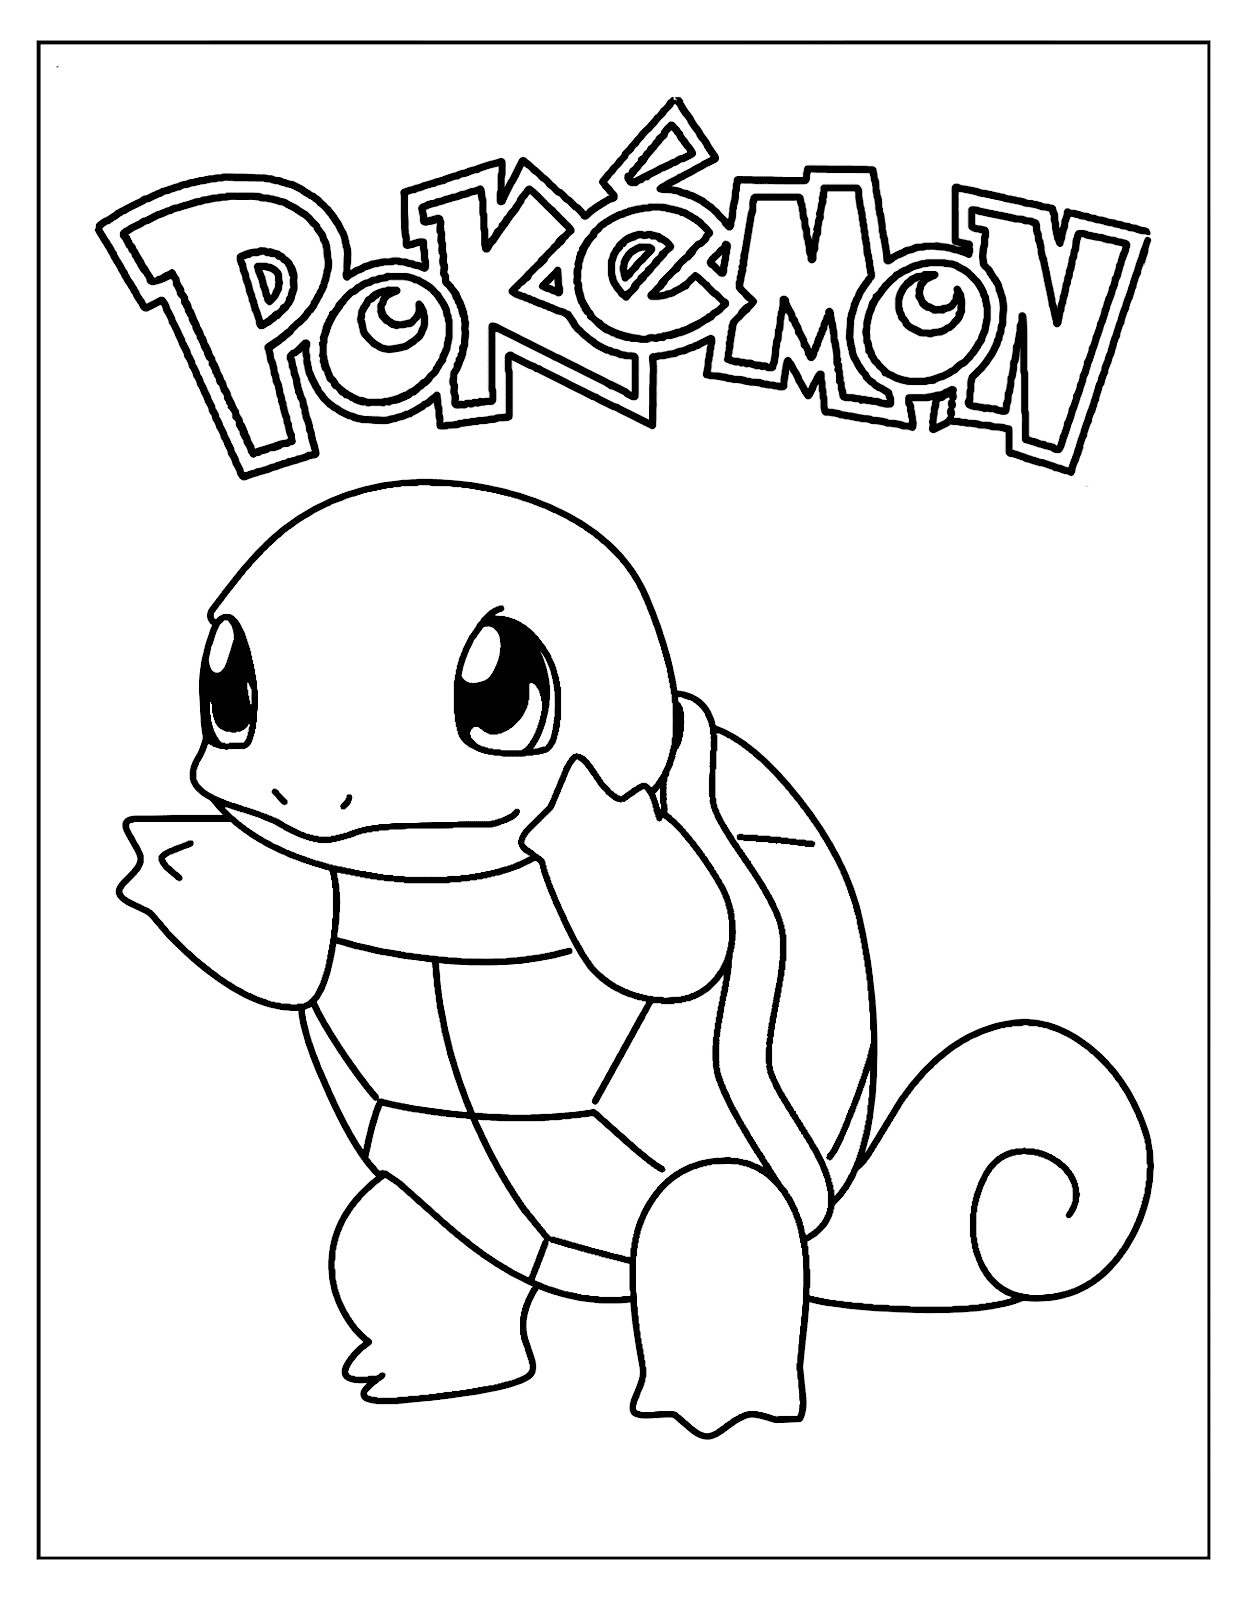 pokemon pictures to color pokemon coloring pages join your favorite pokemon on an pictures to color pokemon